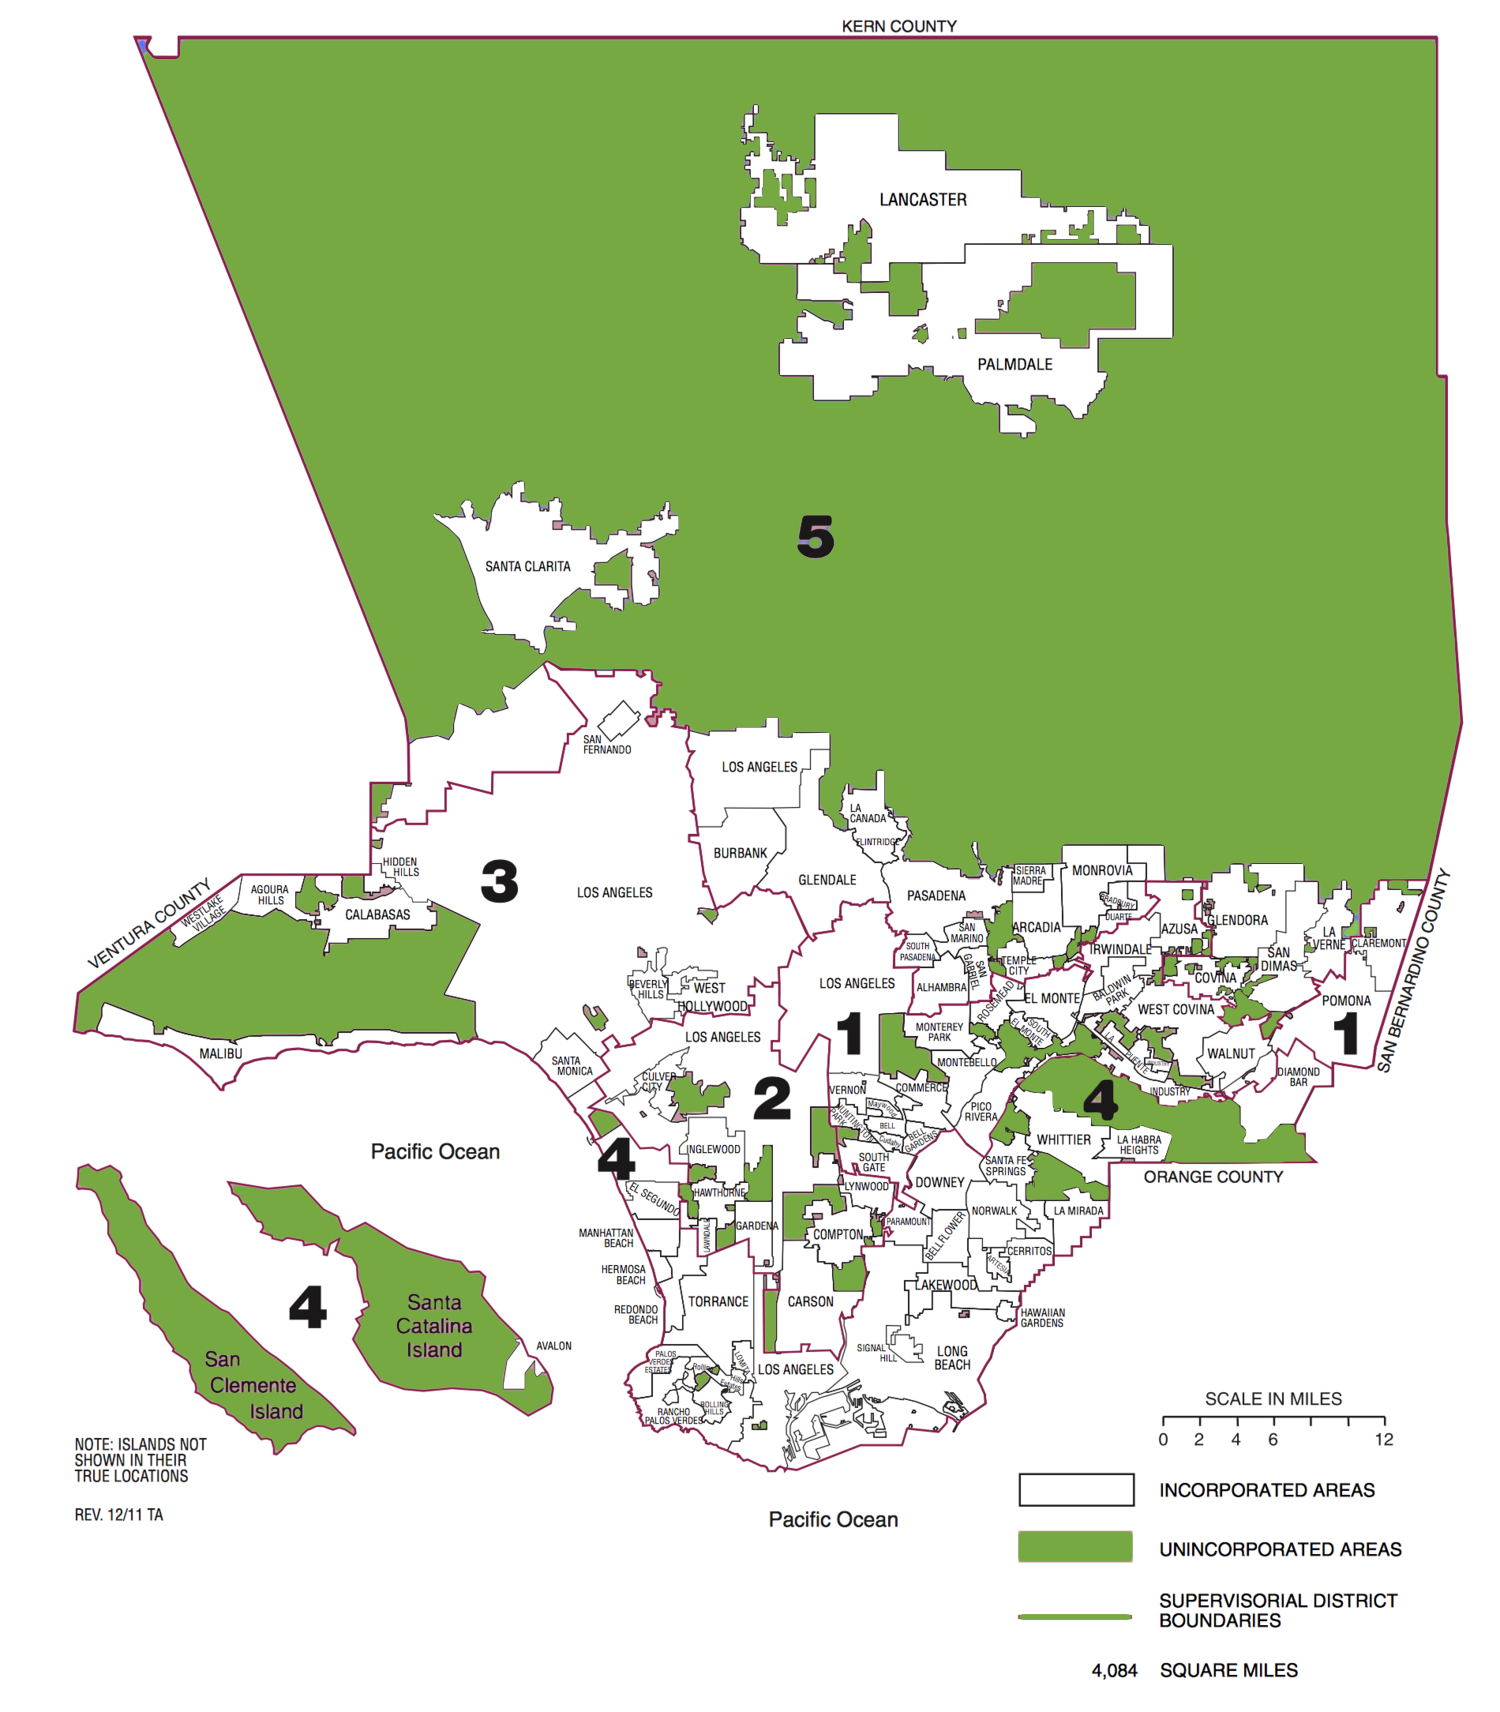 Map Unincorporated in Green.jpg